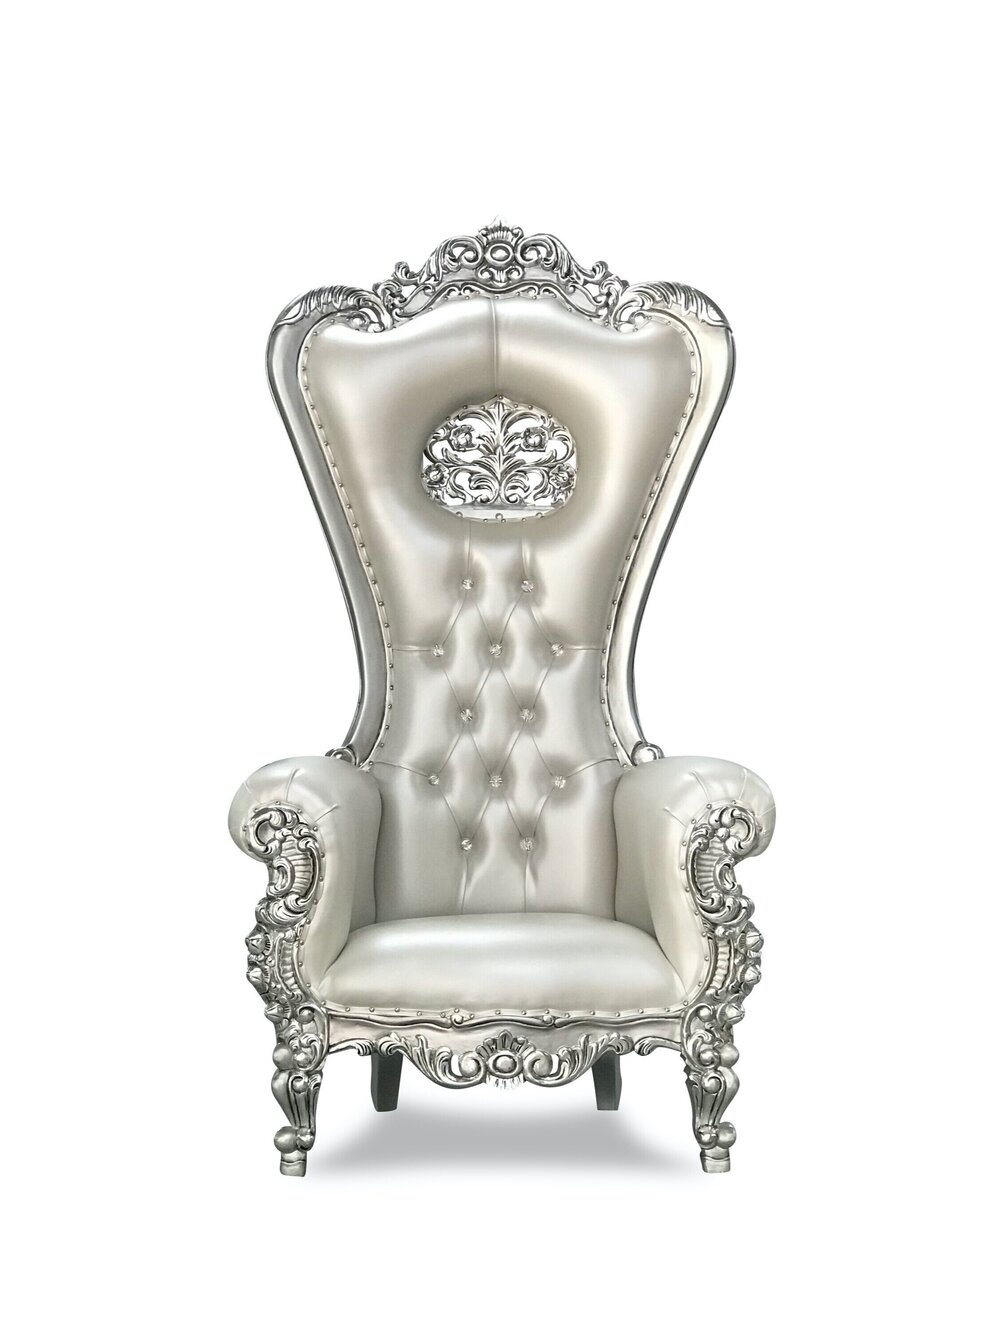 Silver and Silver Throne Chair